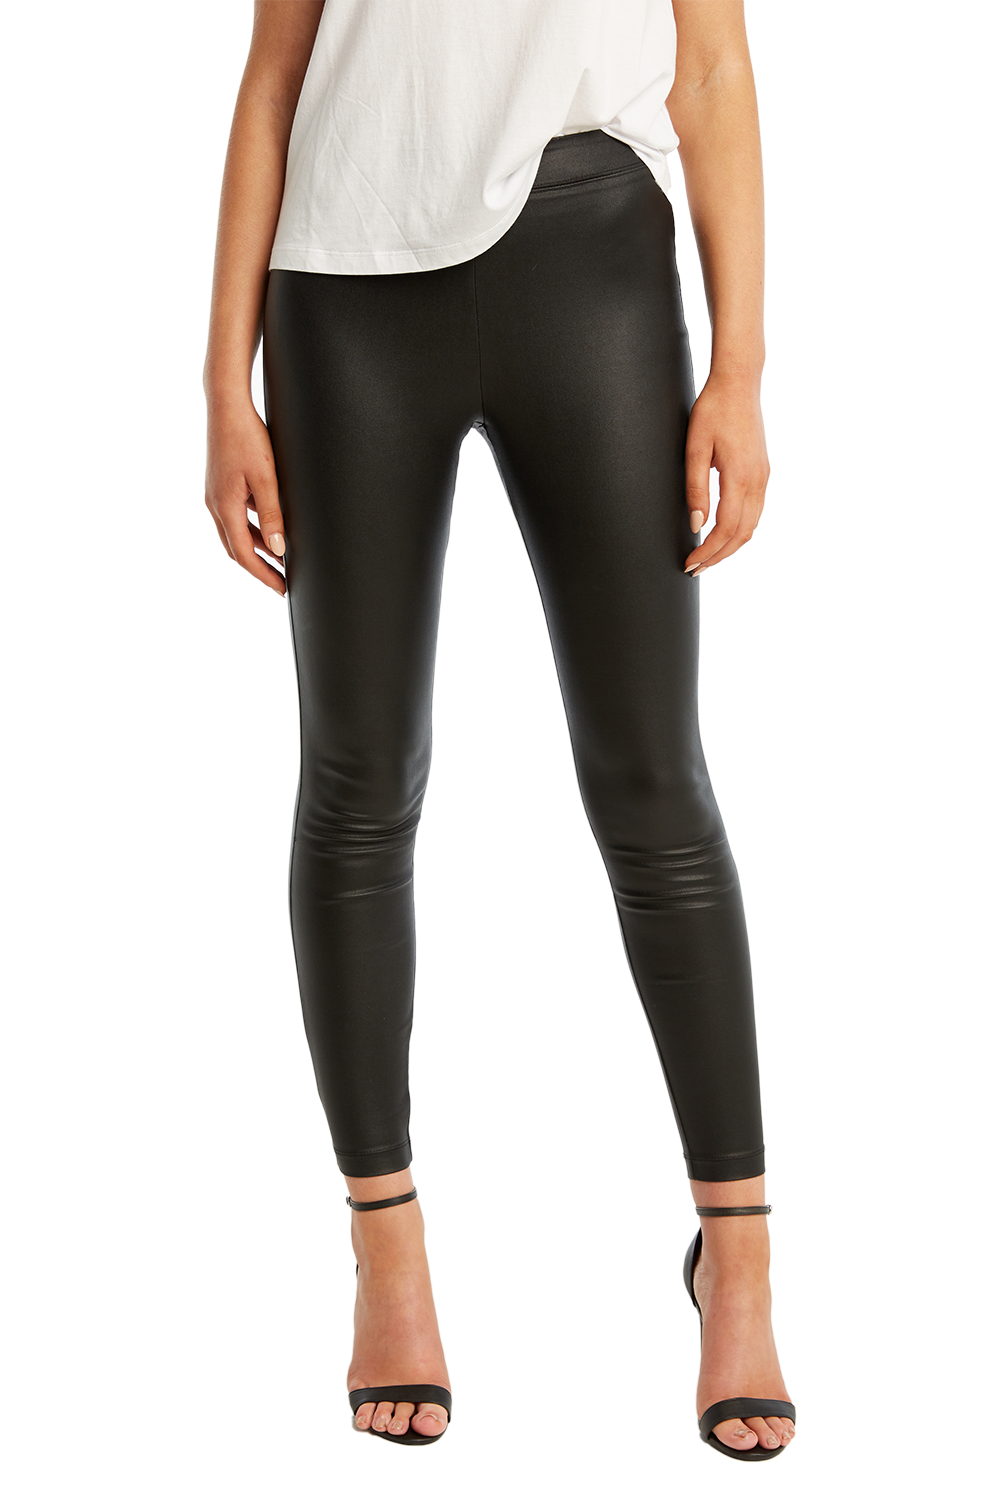 RAVEN LEGGING in colour CAVIAR